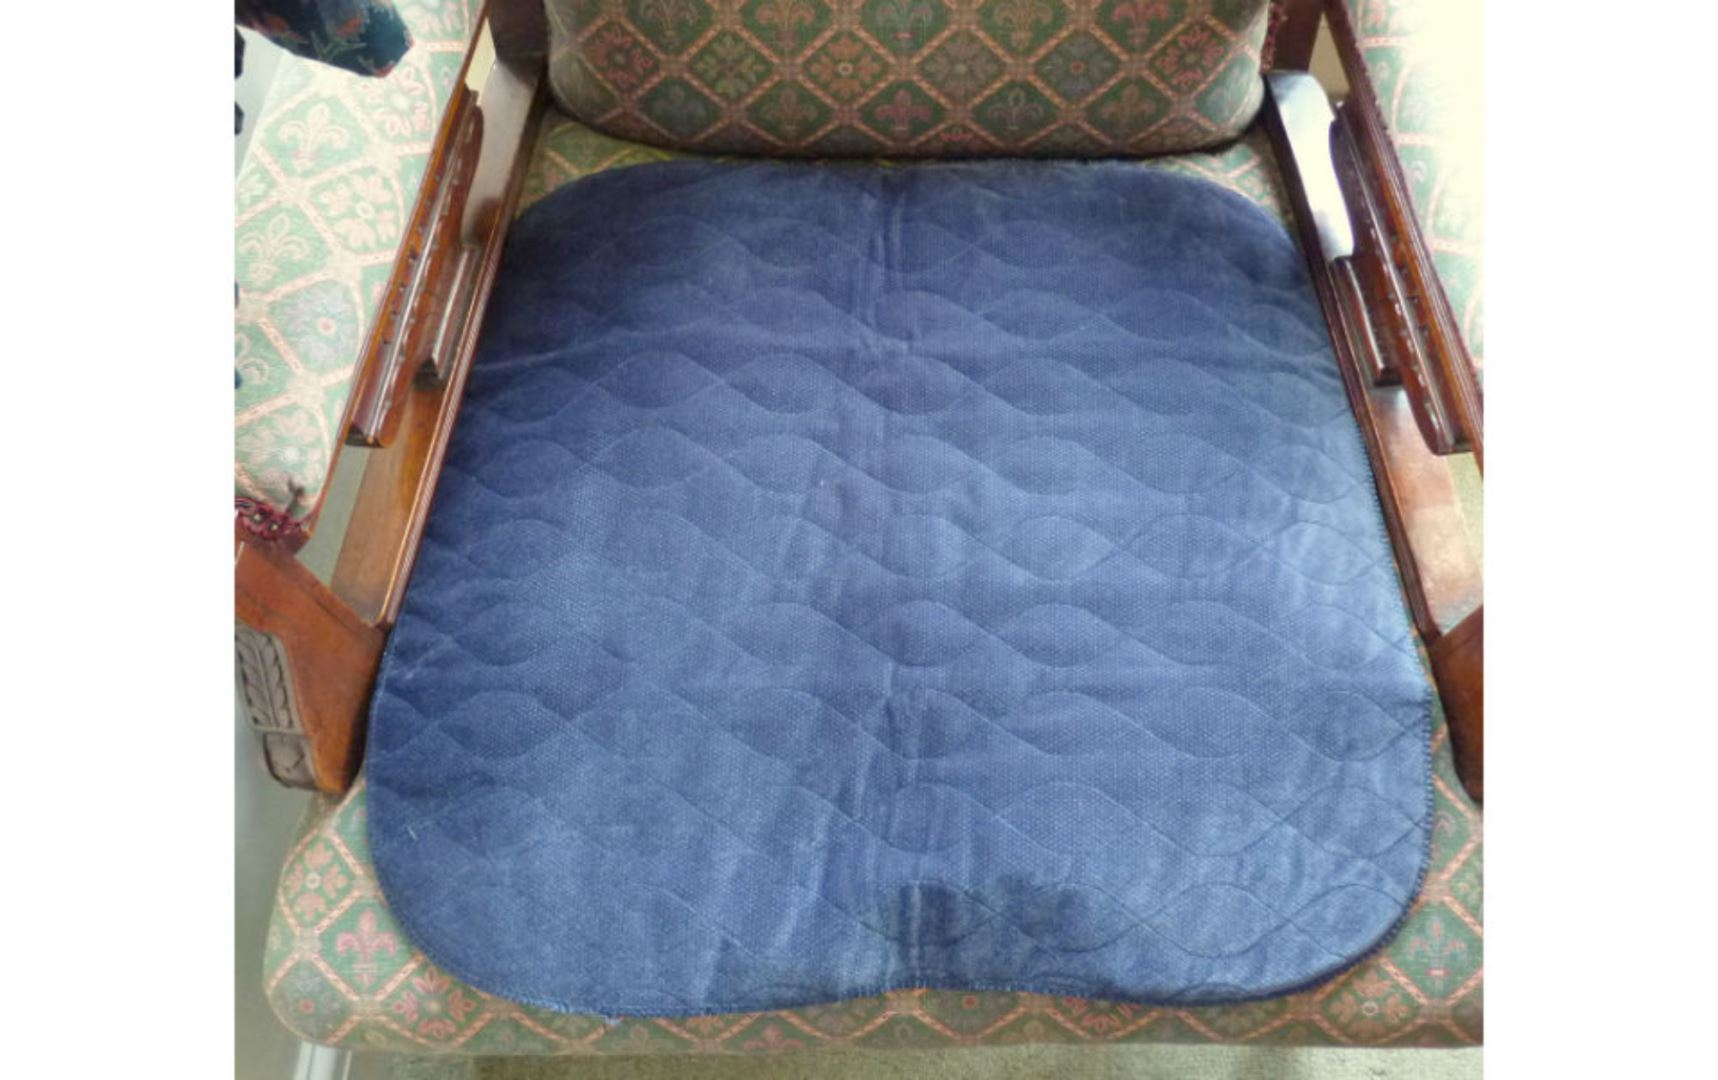 Blue Washable Seat Pad which is a great seat protector from accidents.